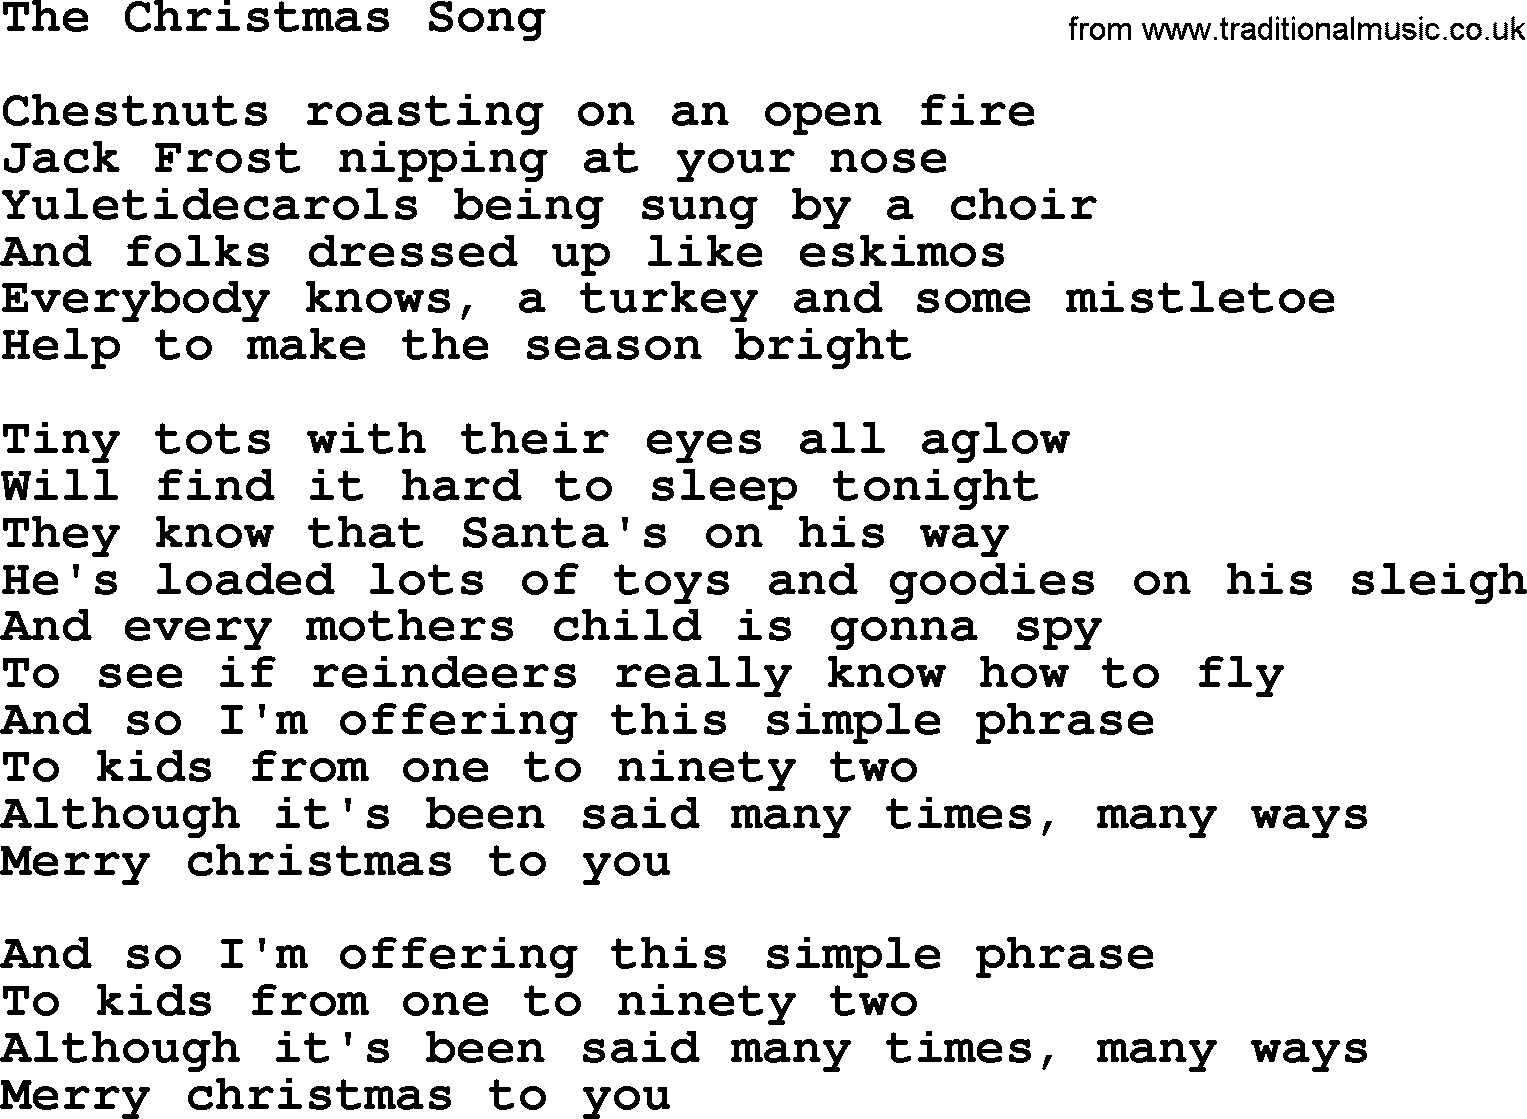 The Christmas Song, by The Byrds - lyrics with pdf